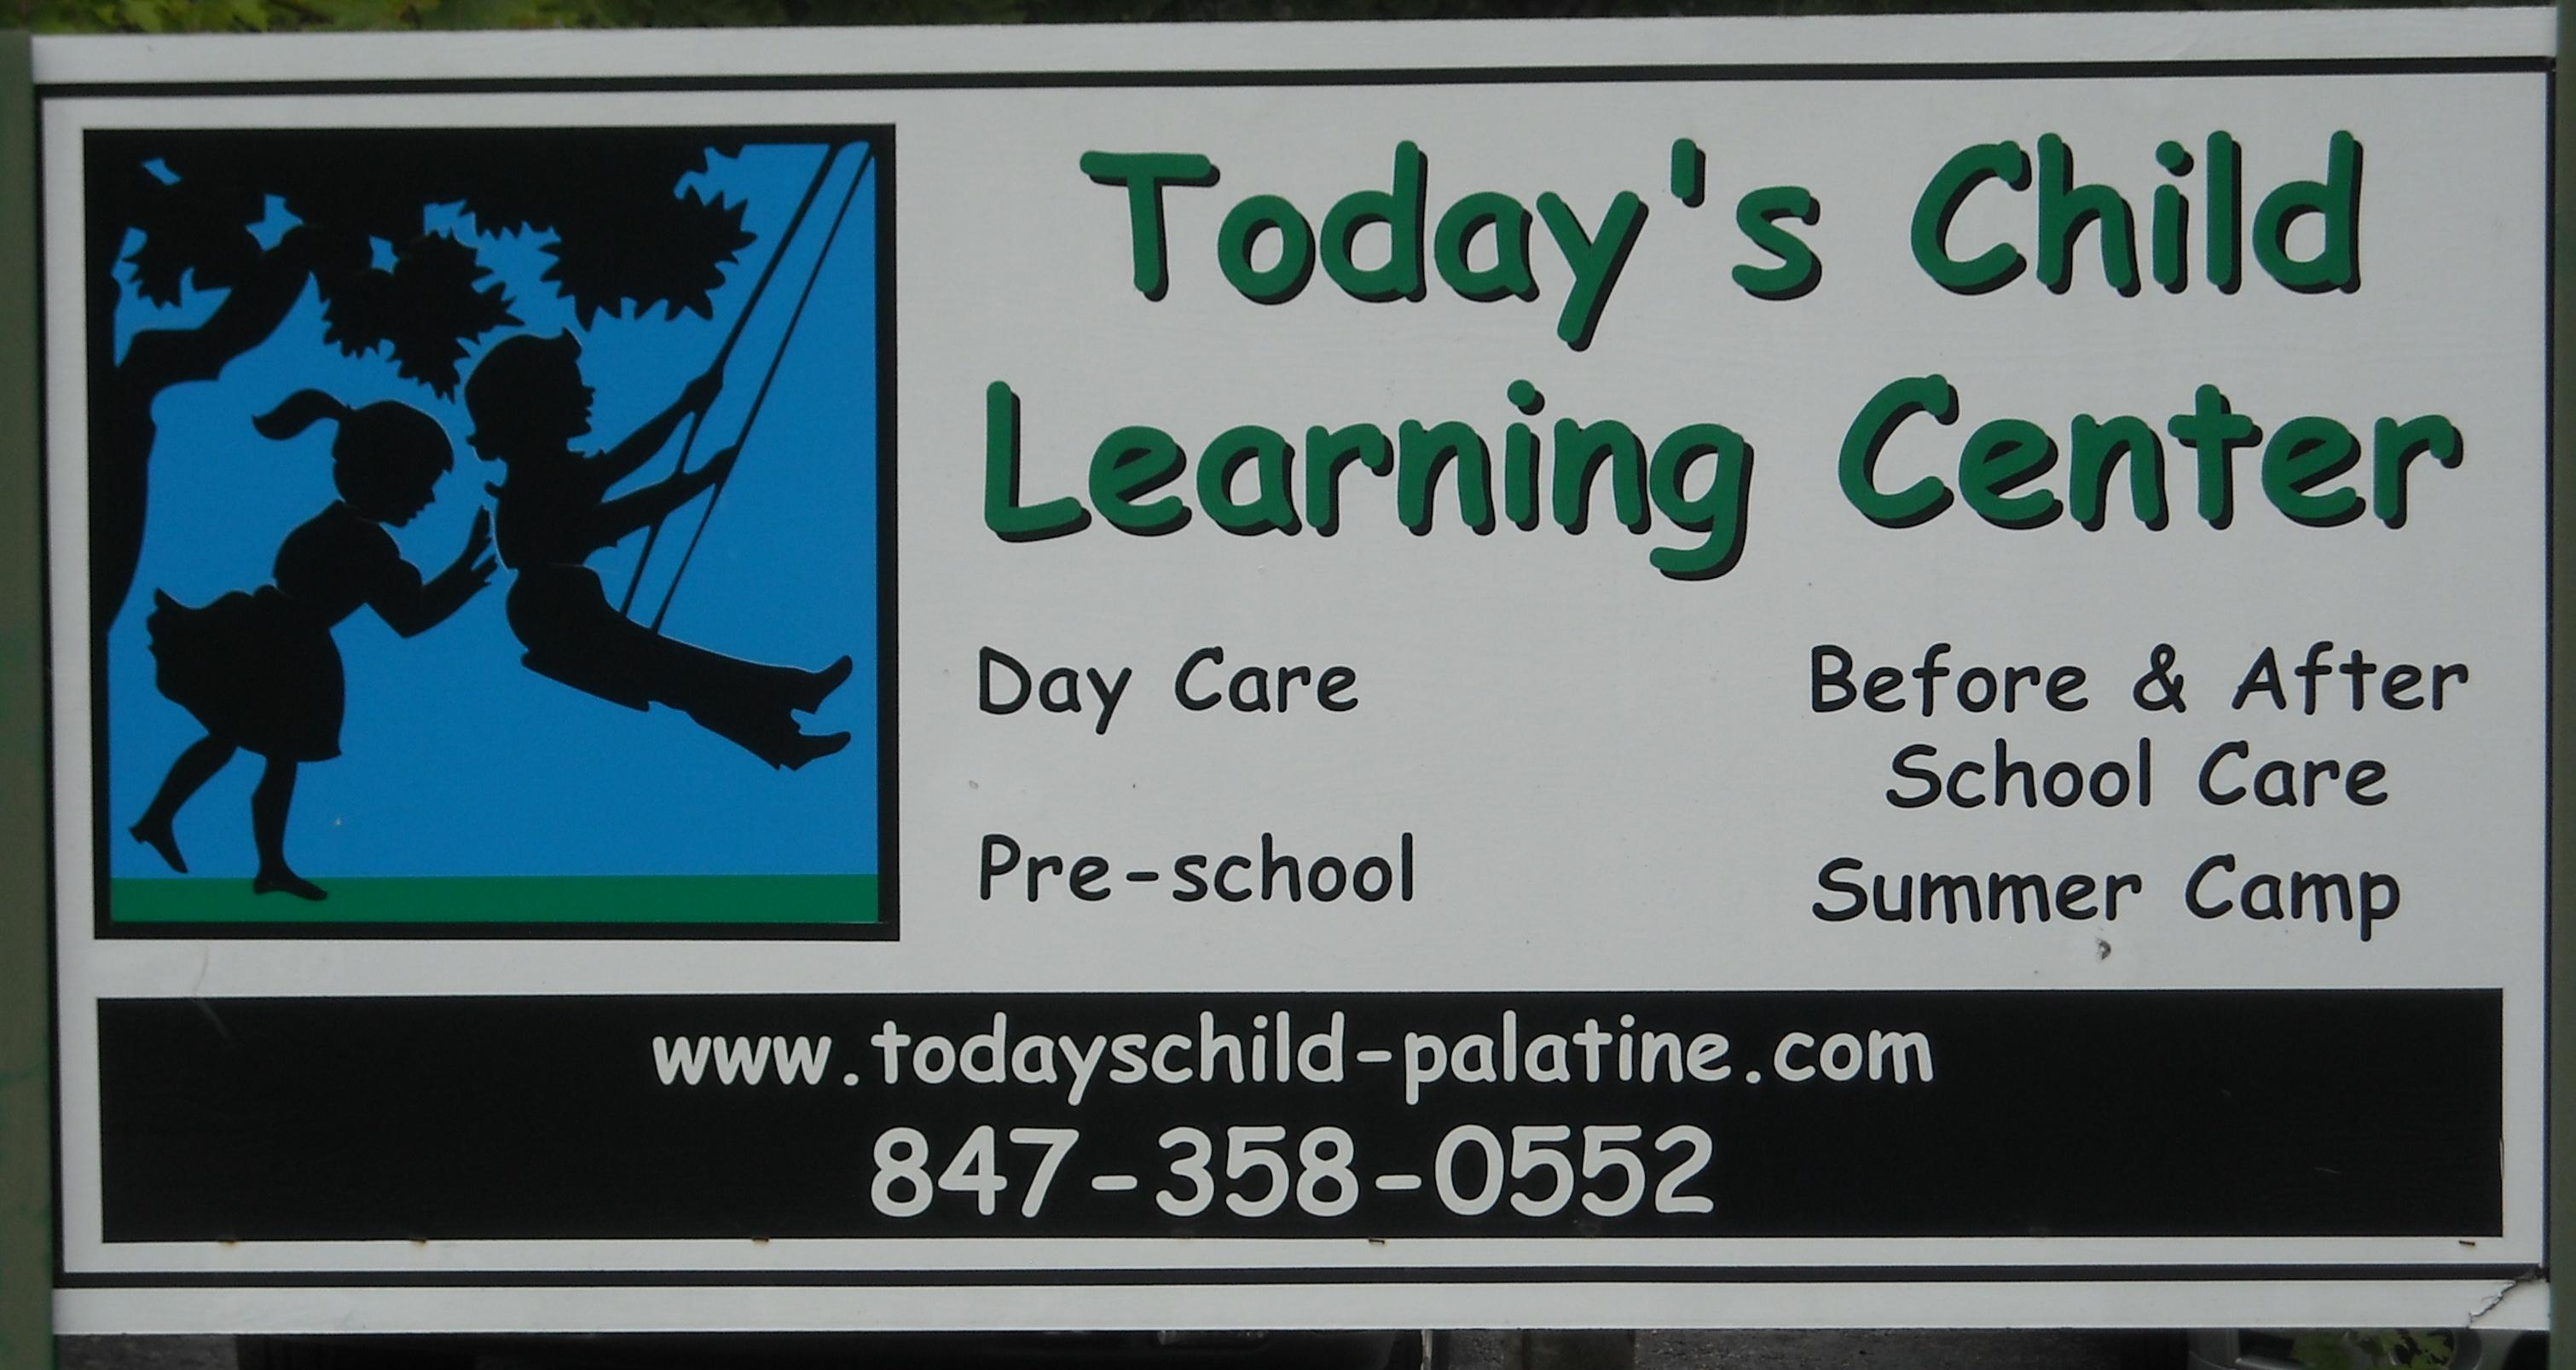 TODAY'S CHILD LEARNING CENTER LTD